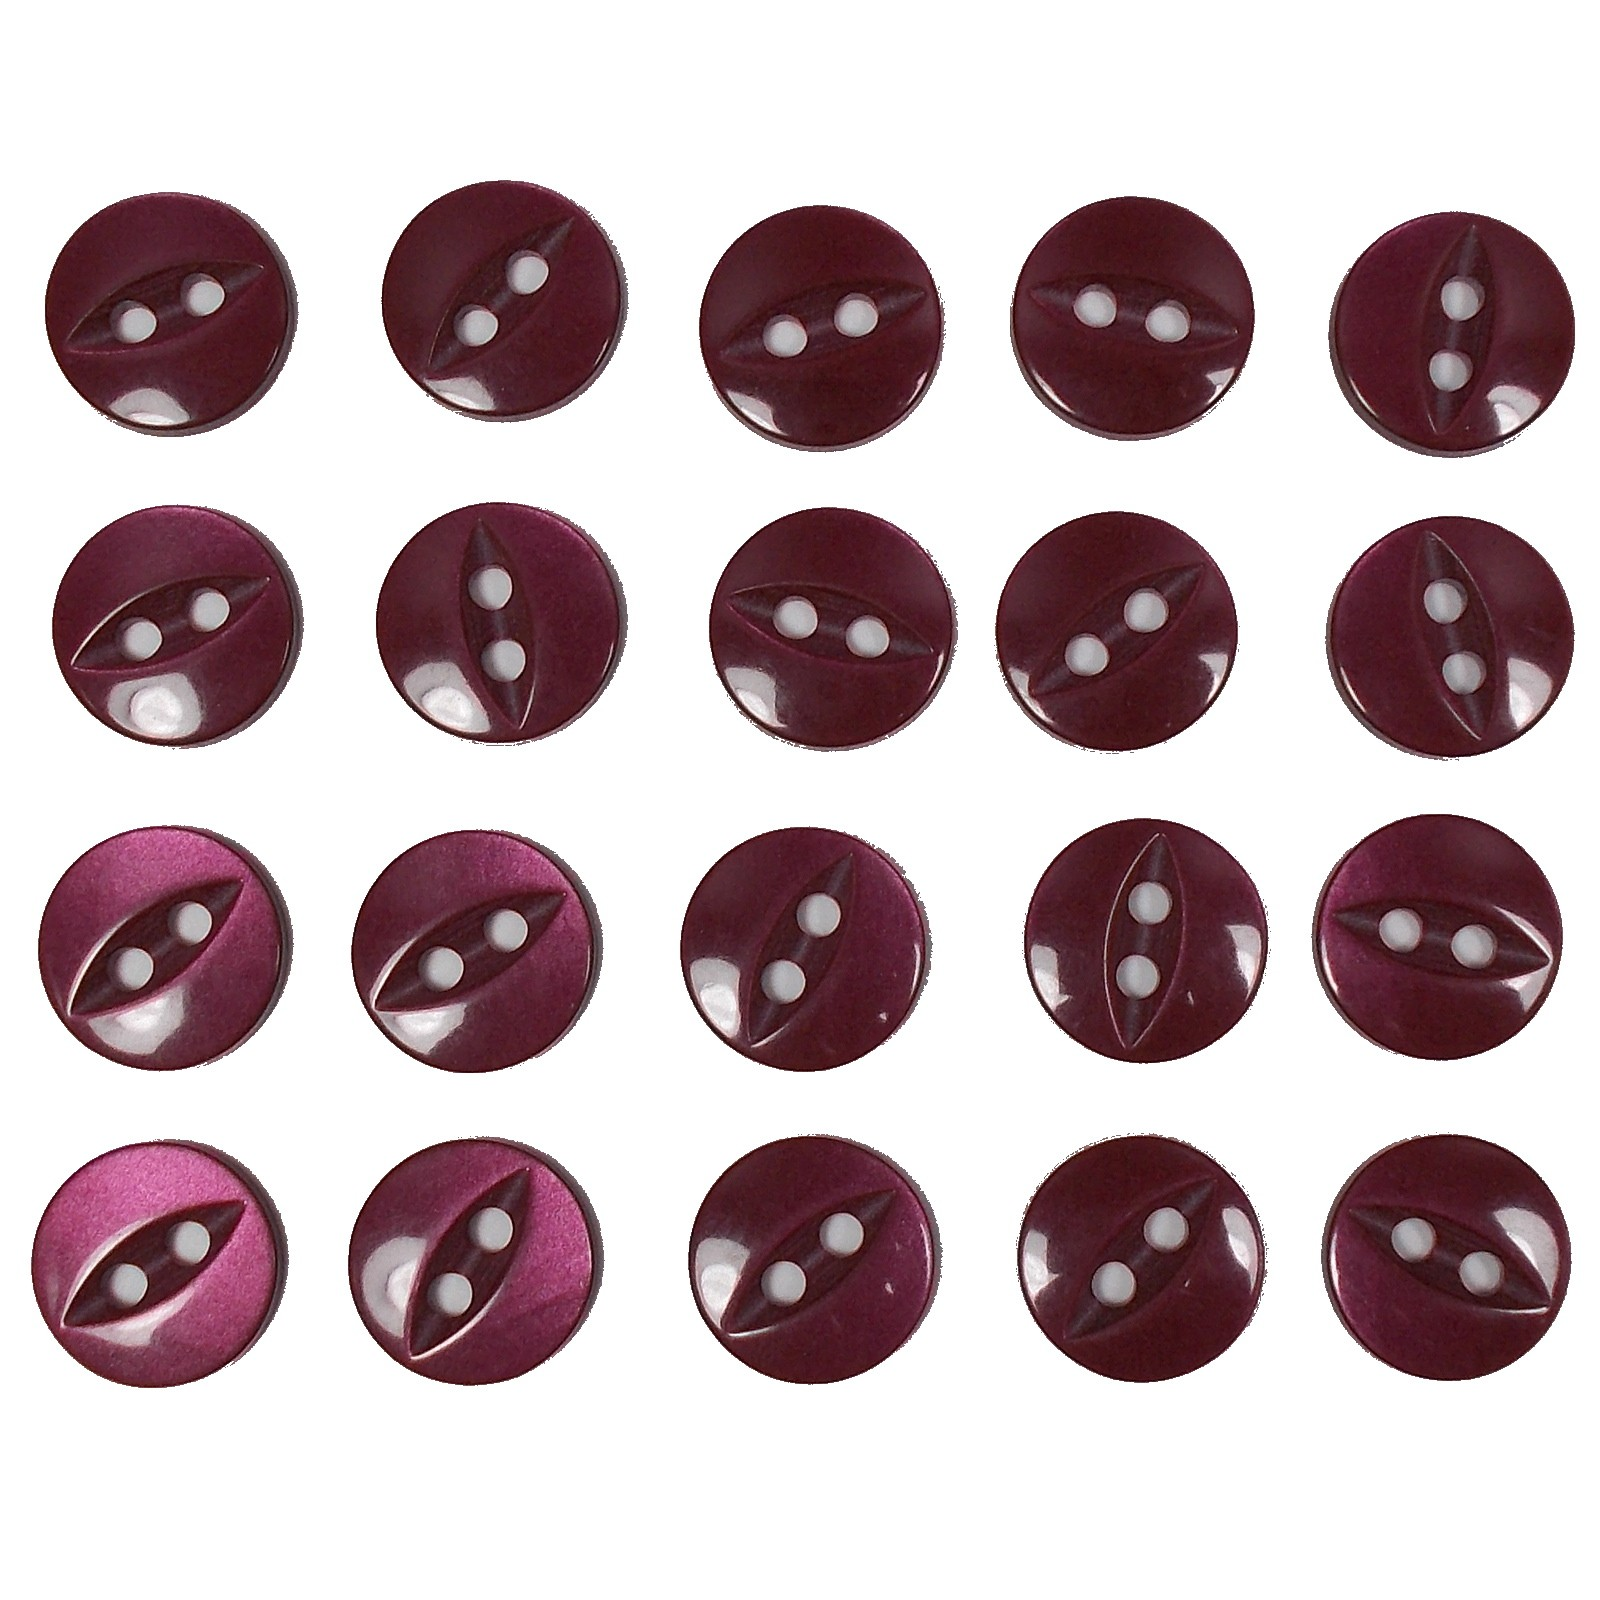 Fisheye Basic Buttons 14mm Burgundy Pack of 20